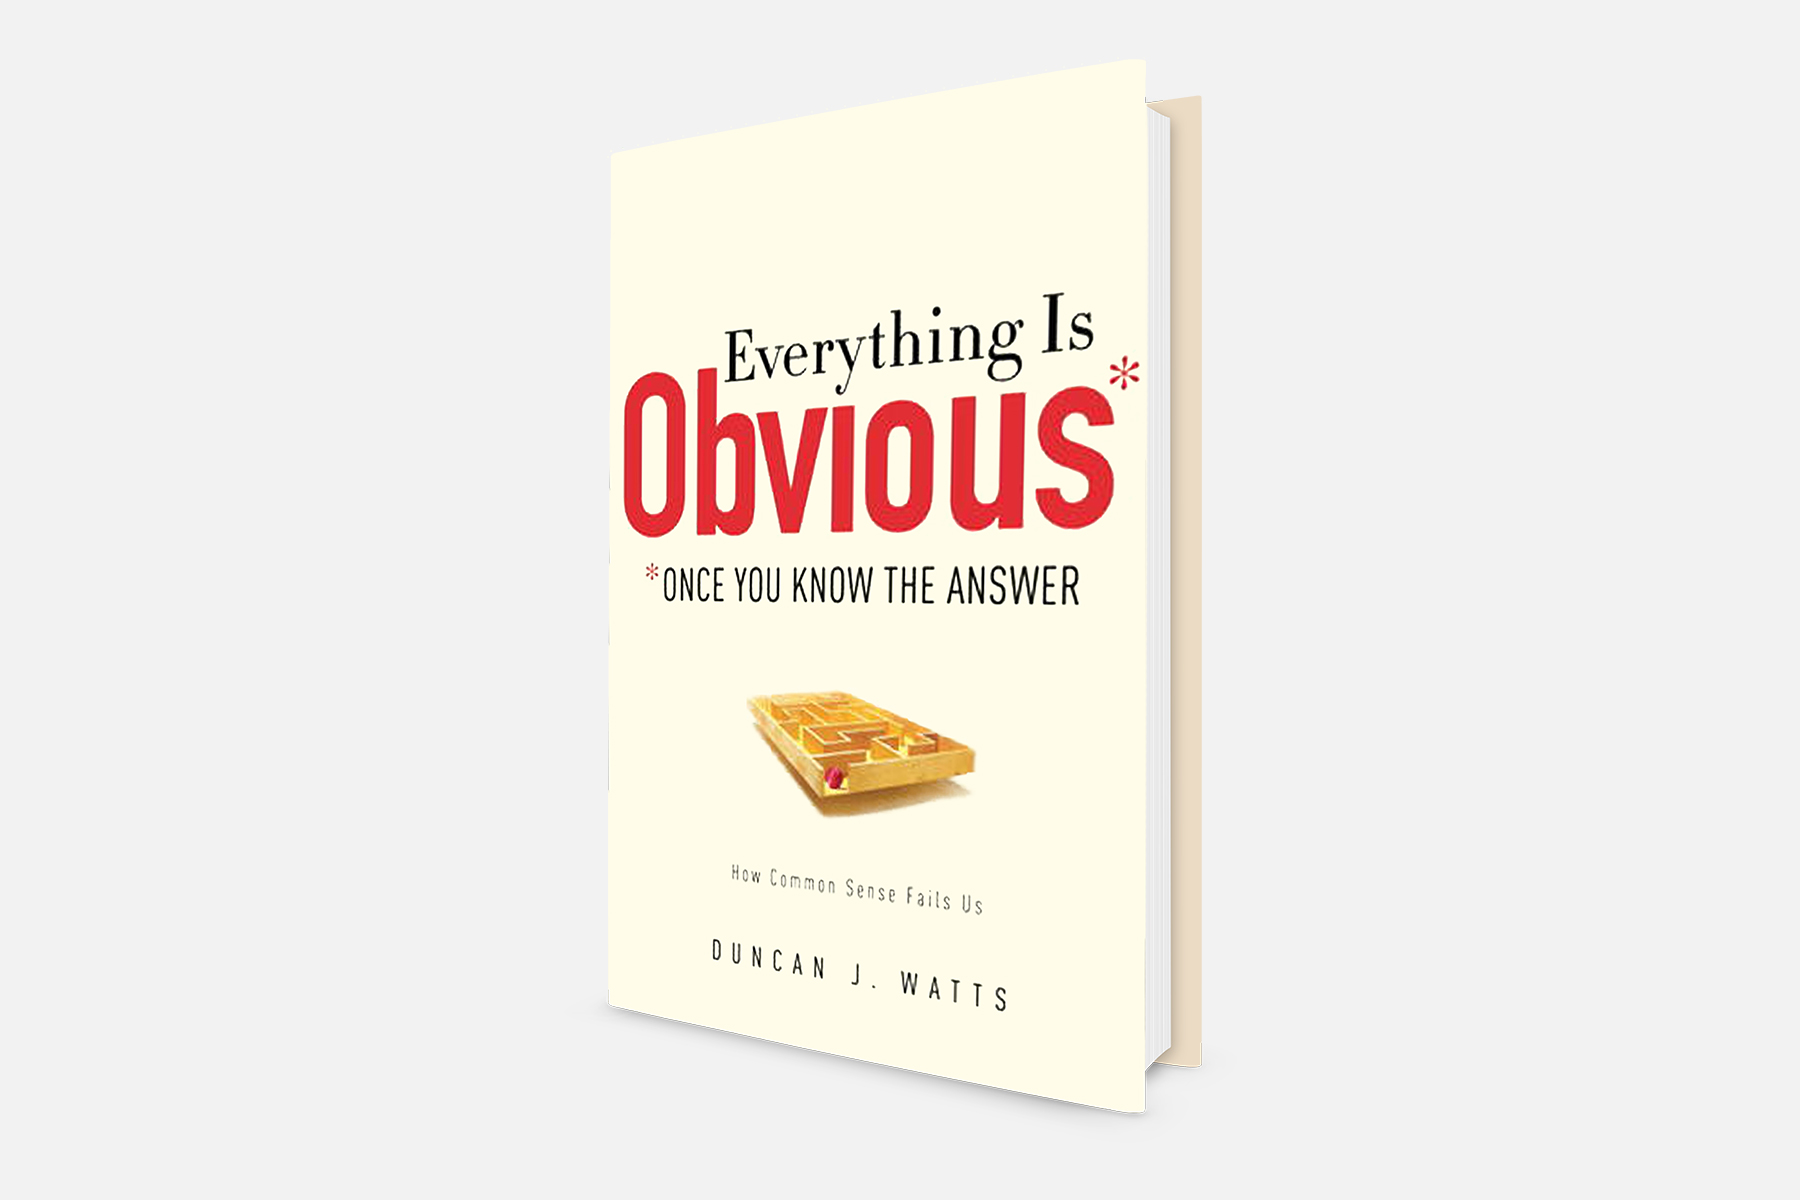 everything is obvious once you know the answer by duncan j. watts